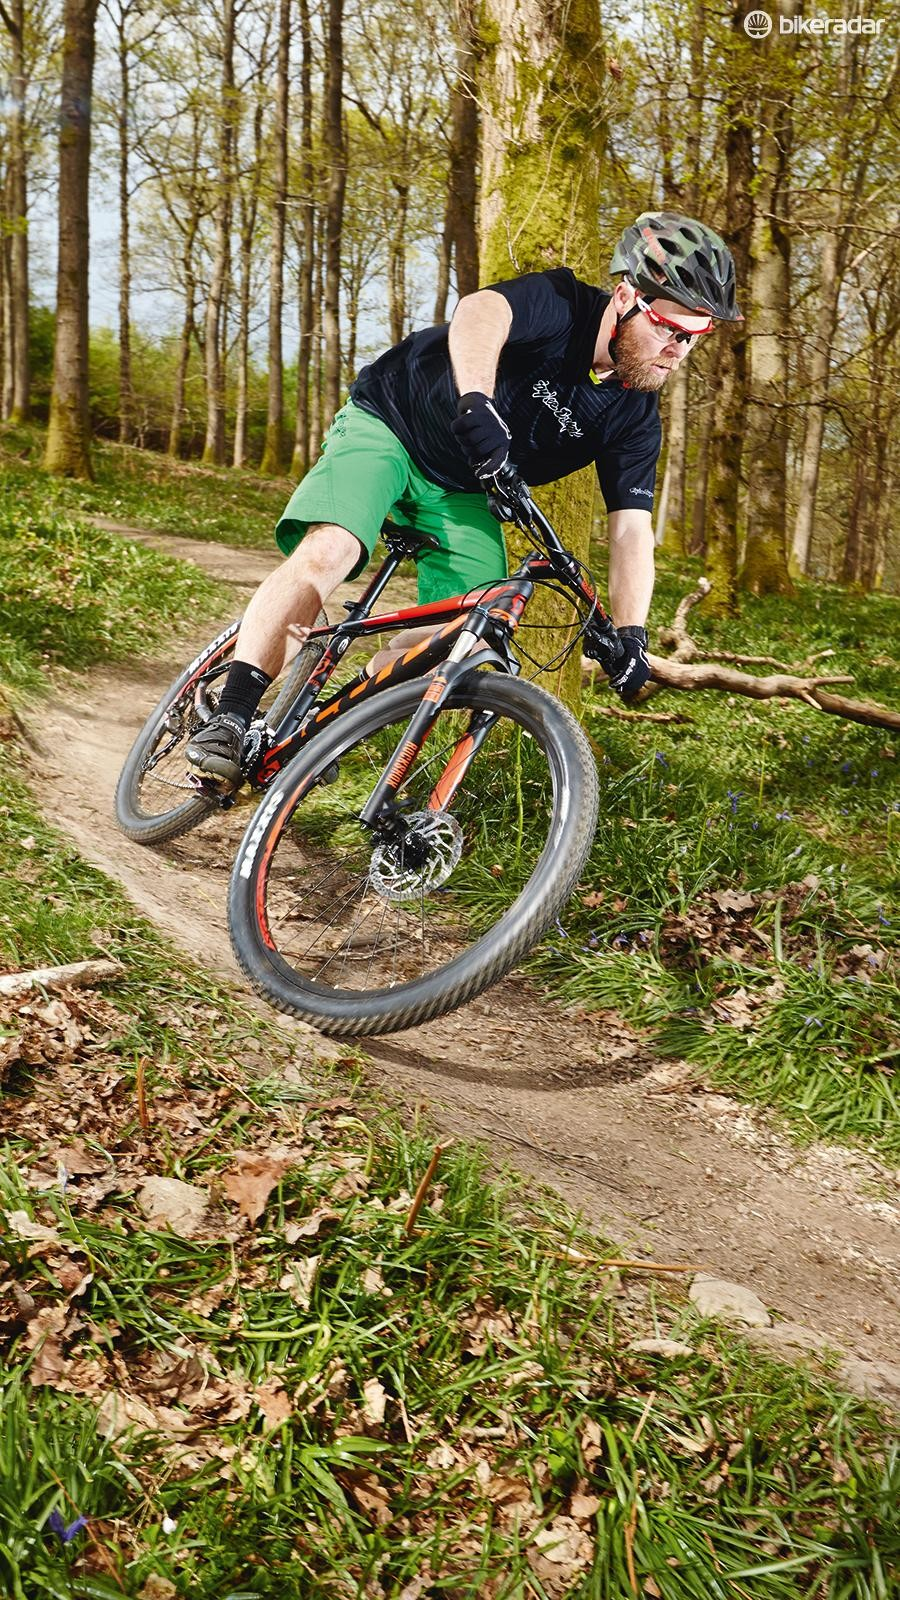 Inexperienced riders may find the low front end takes some getting used to on steep downhill sections